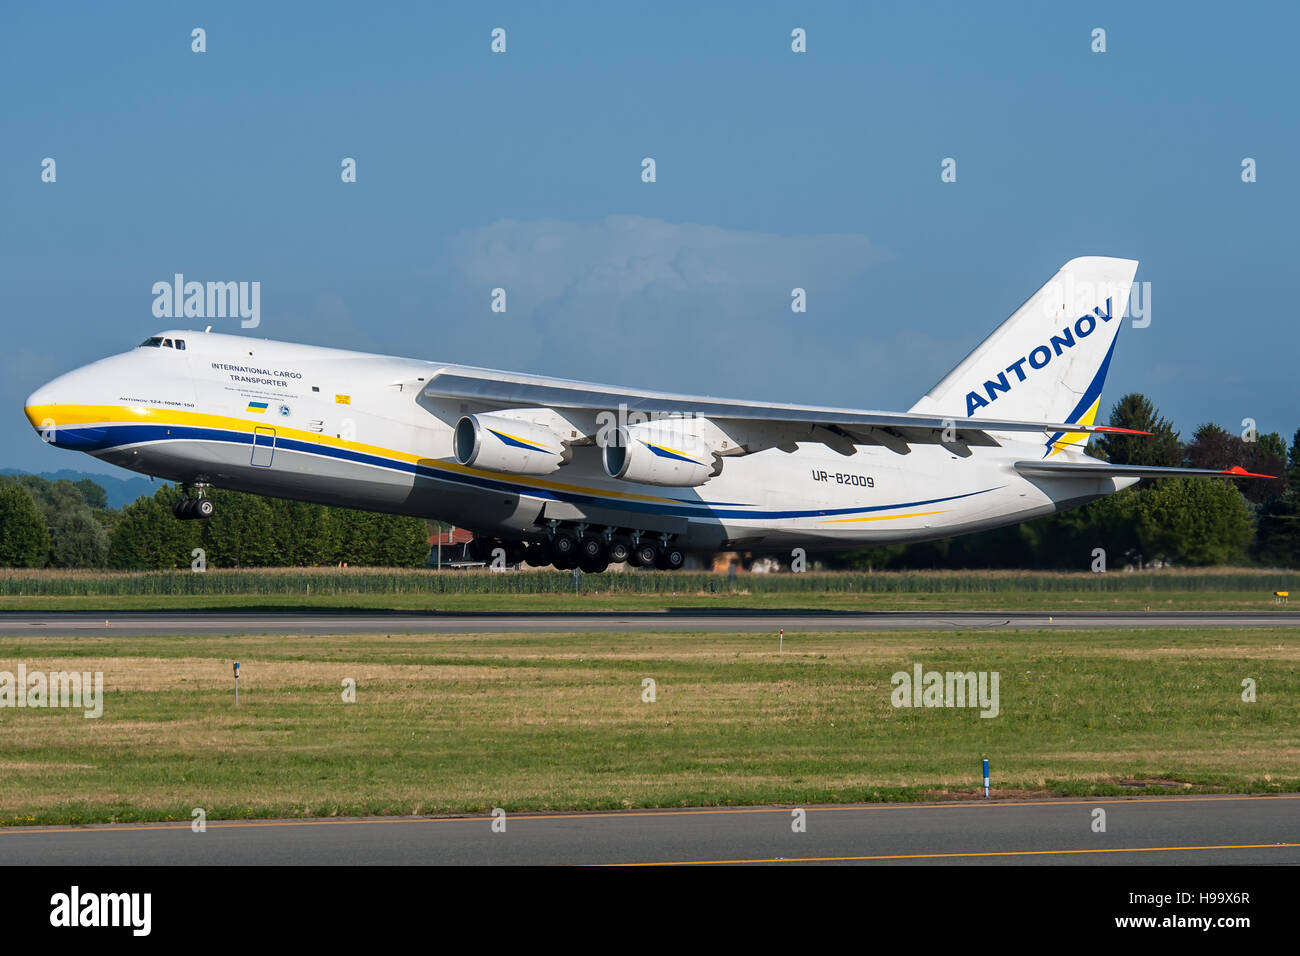 Antonov AN124 Design Bureau departing from Turin Airport - Stock Image